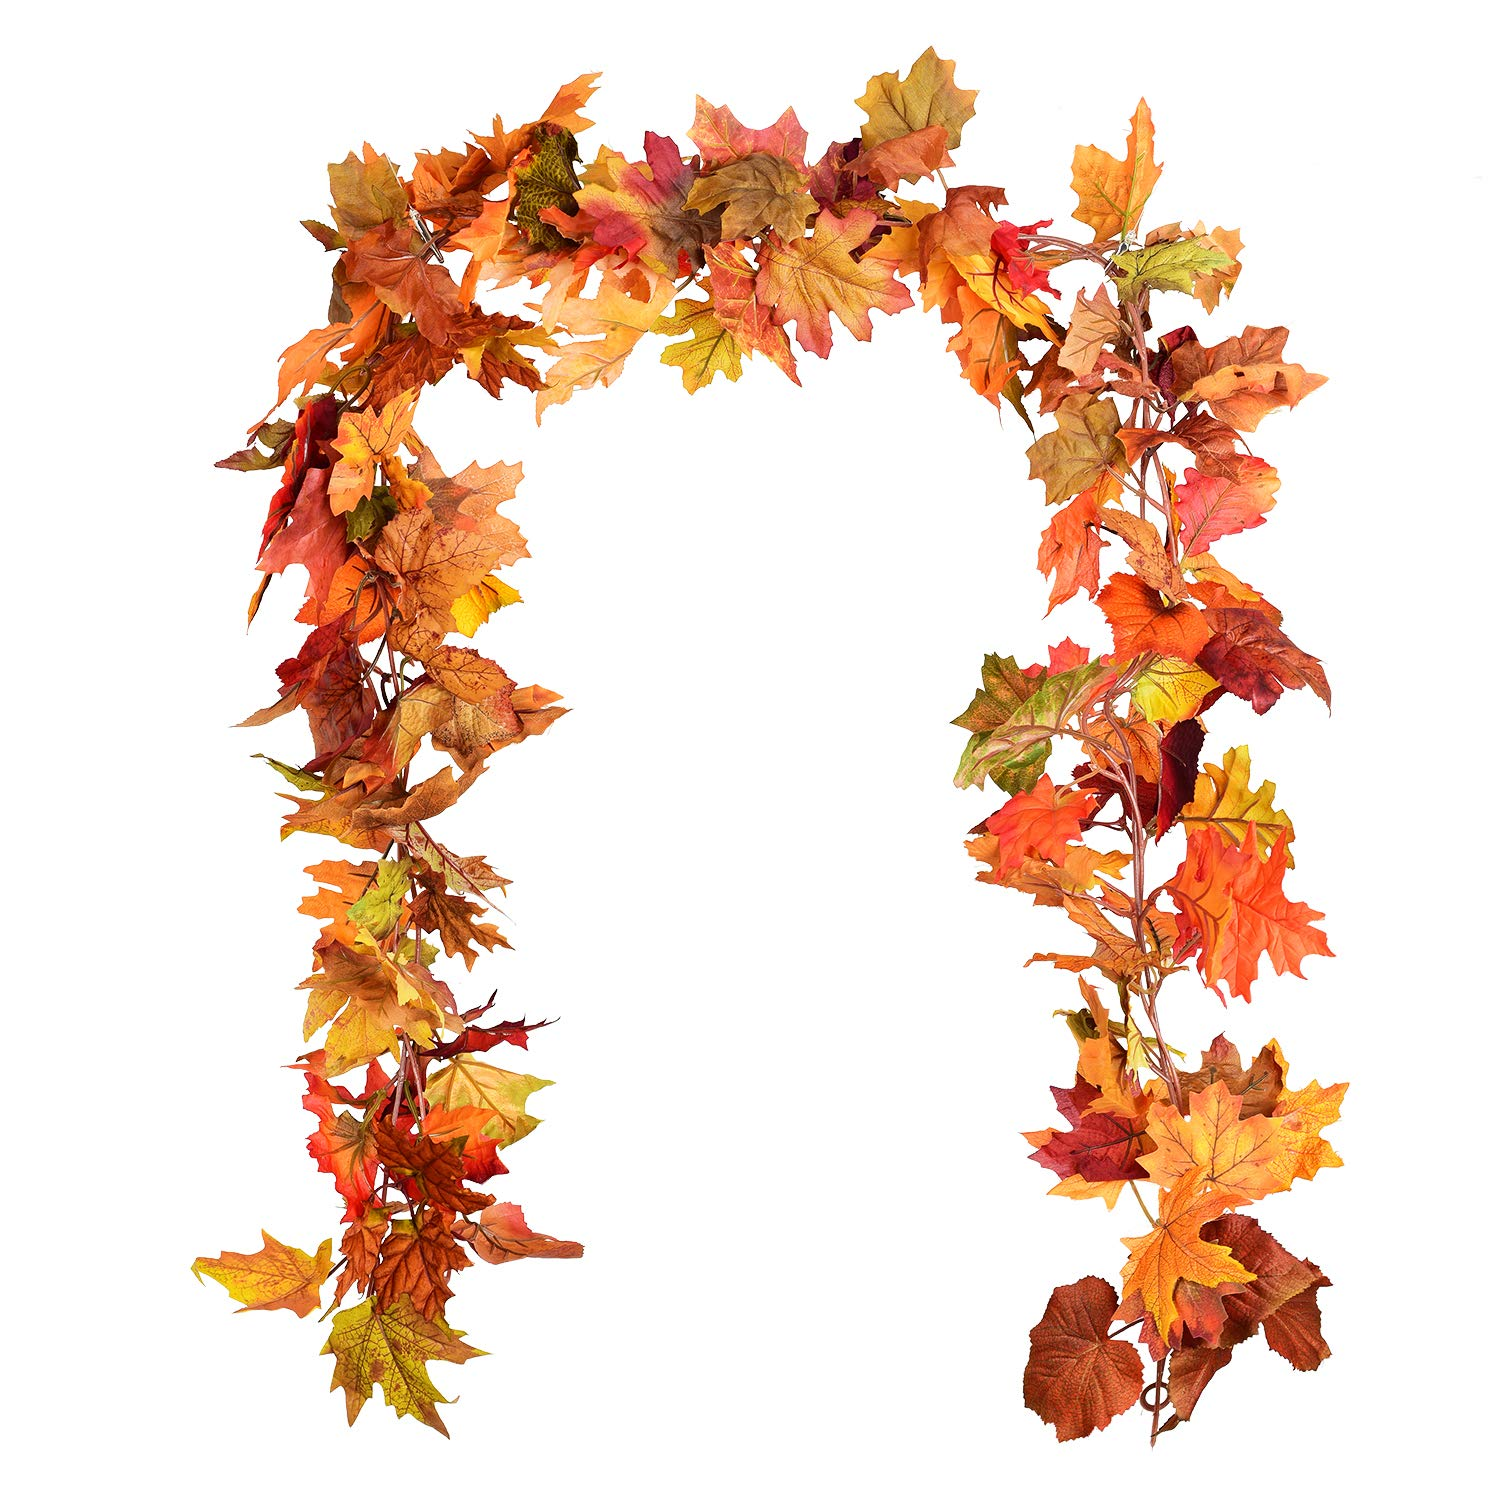 DearHouse 2 Pack Fall Garland Maple Leaf, 5.9Ft/Piece Hanging Vine Garland Artificial Autumn Foliage Garland Thanksgiving Decor for Home Wedding Fireplace Party Christmas